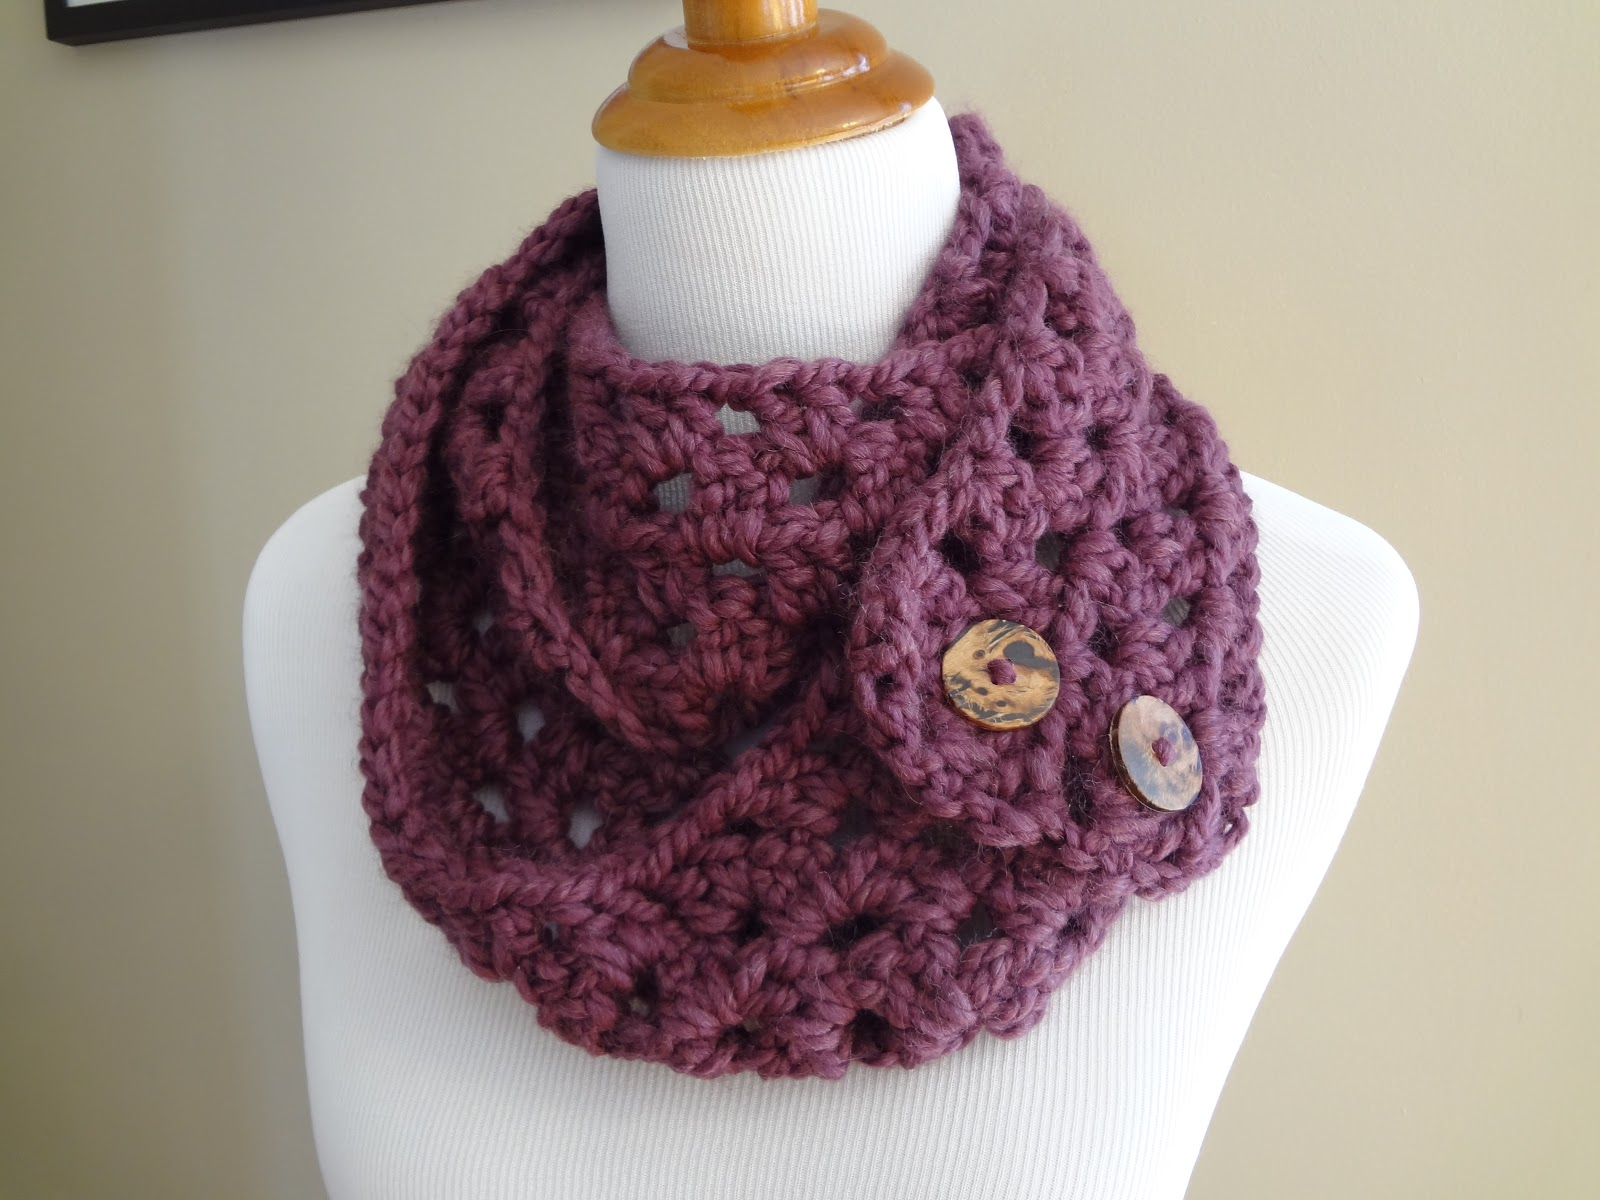 Crochet Pattern For Infinity Scarf With Buttons : Fiber Flux: Free Crochet Pattern...Fiona Button Scarf!